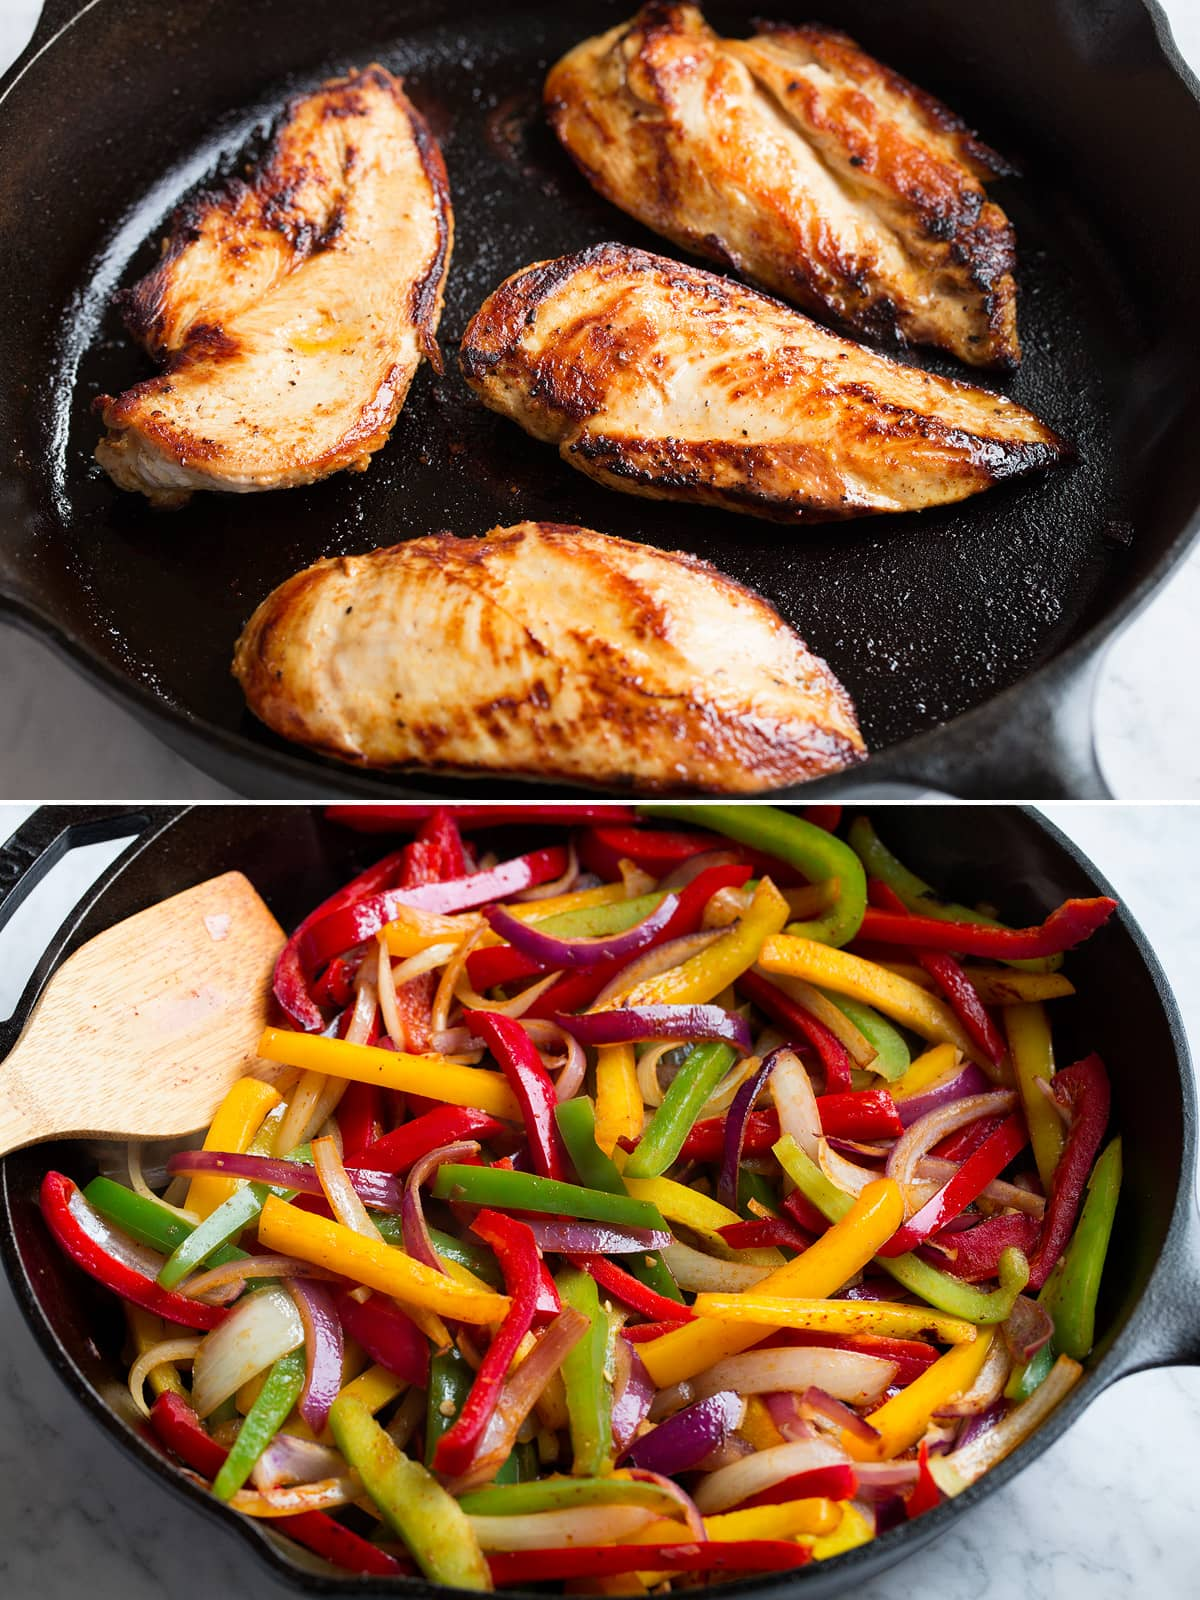 Marinated chicken breasts being cooked in a cast iron skillet, then lower image showing sauteing sliced bell peppers and onions in a cast iron skillet.